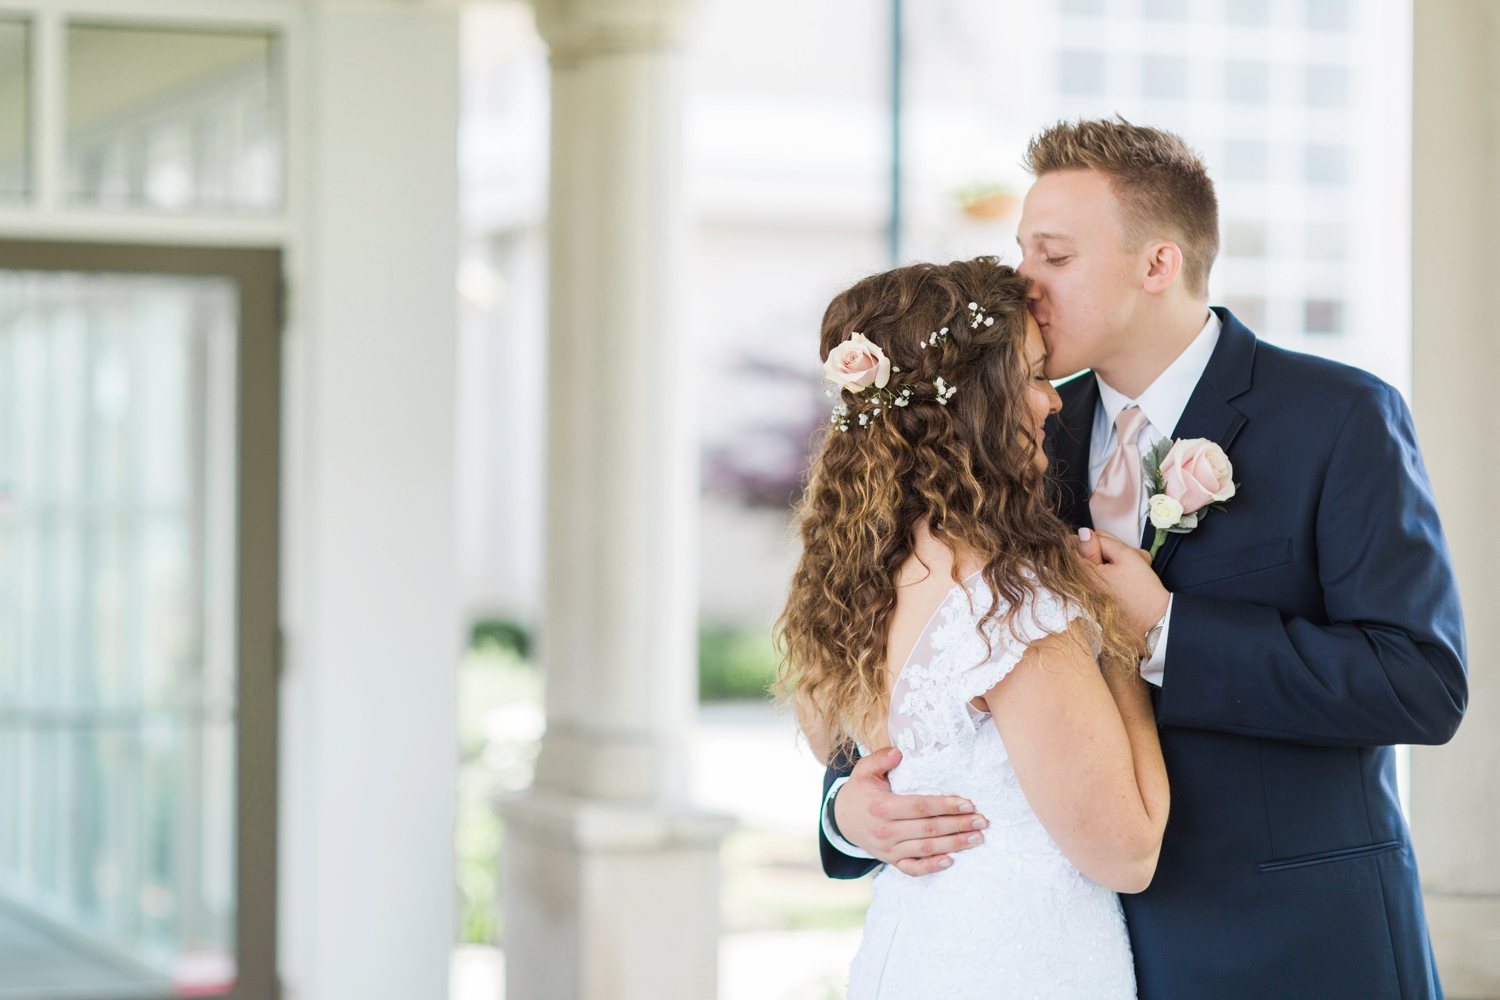 Community_Life_Center_Indianapolis_Indiana_Wedding_Photographer_Chloe_Luka_Photography_6868.jpg